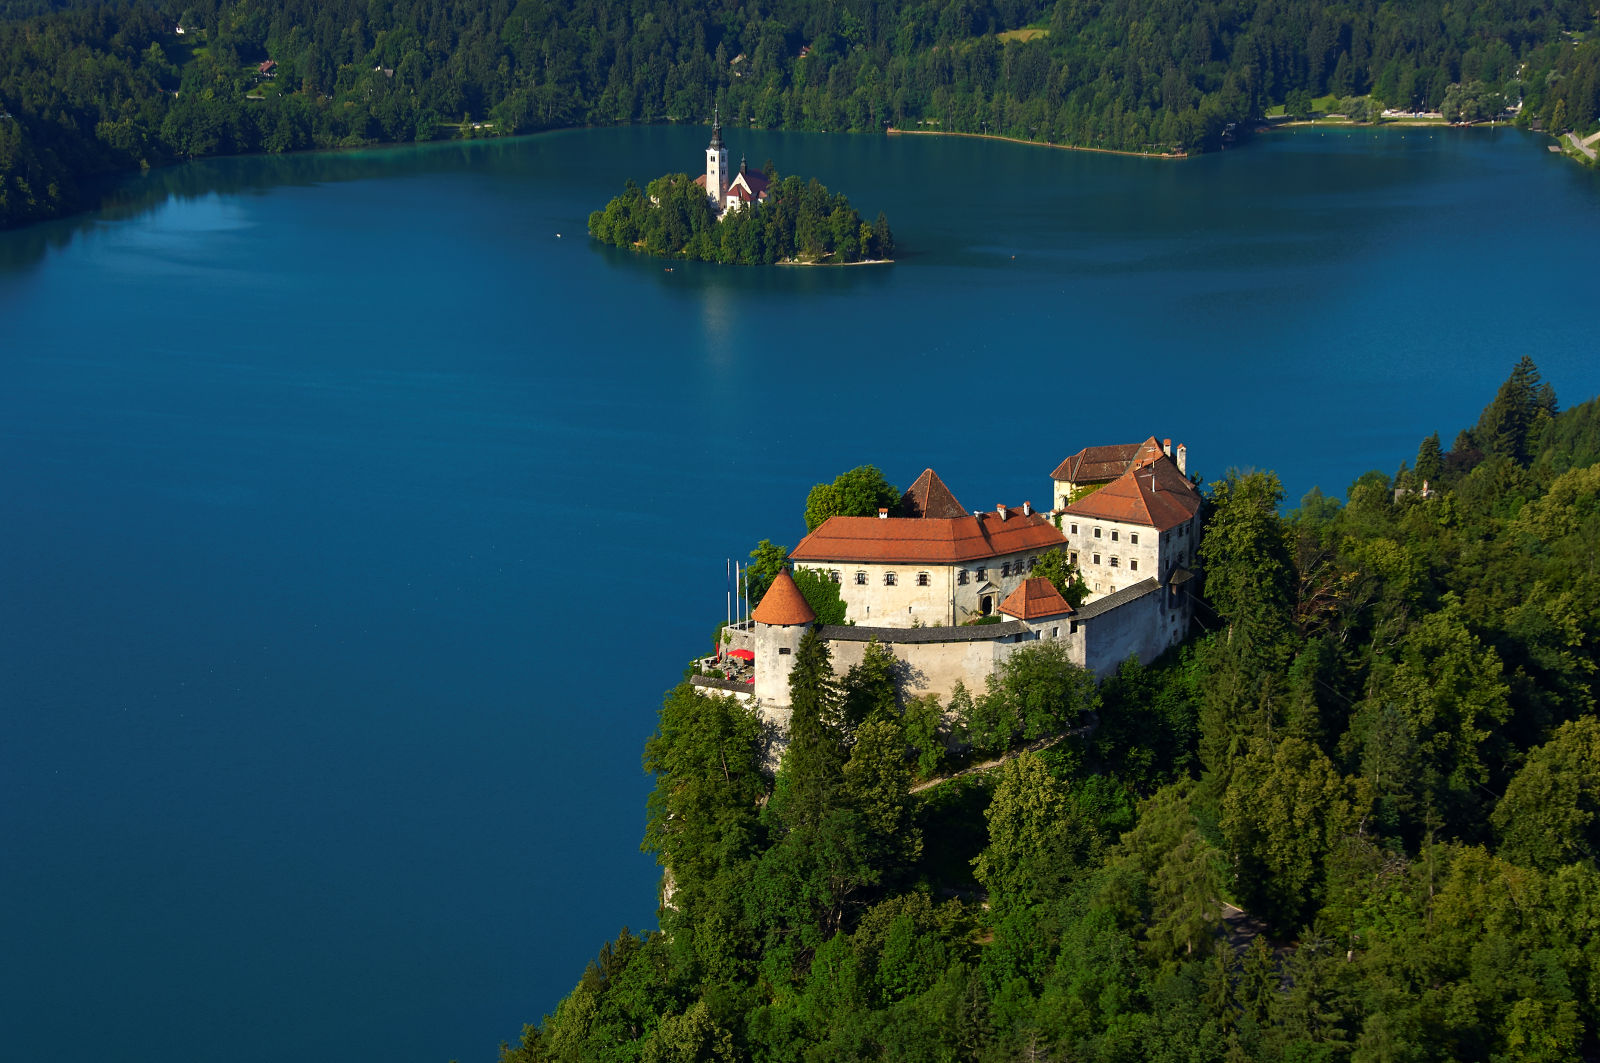 Aerial view of Bled Castle and Lake Bled, Slovenia